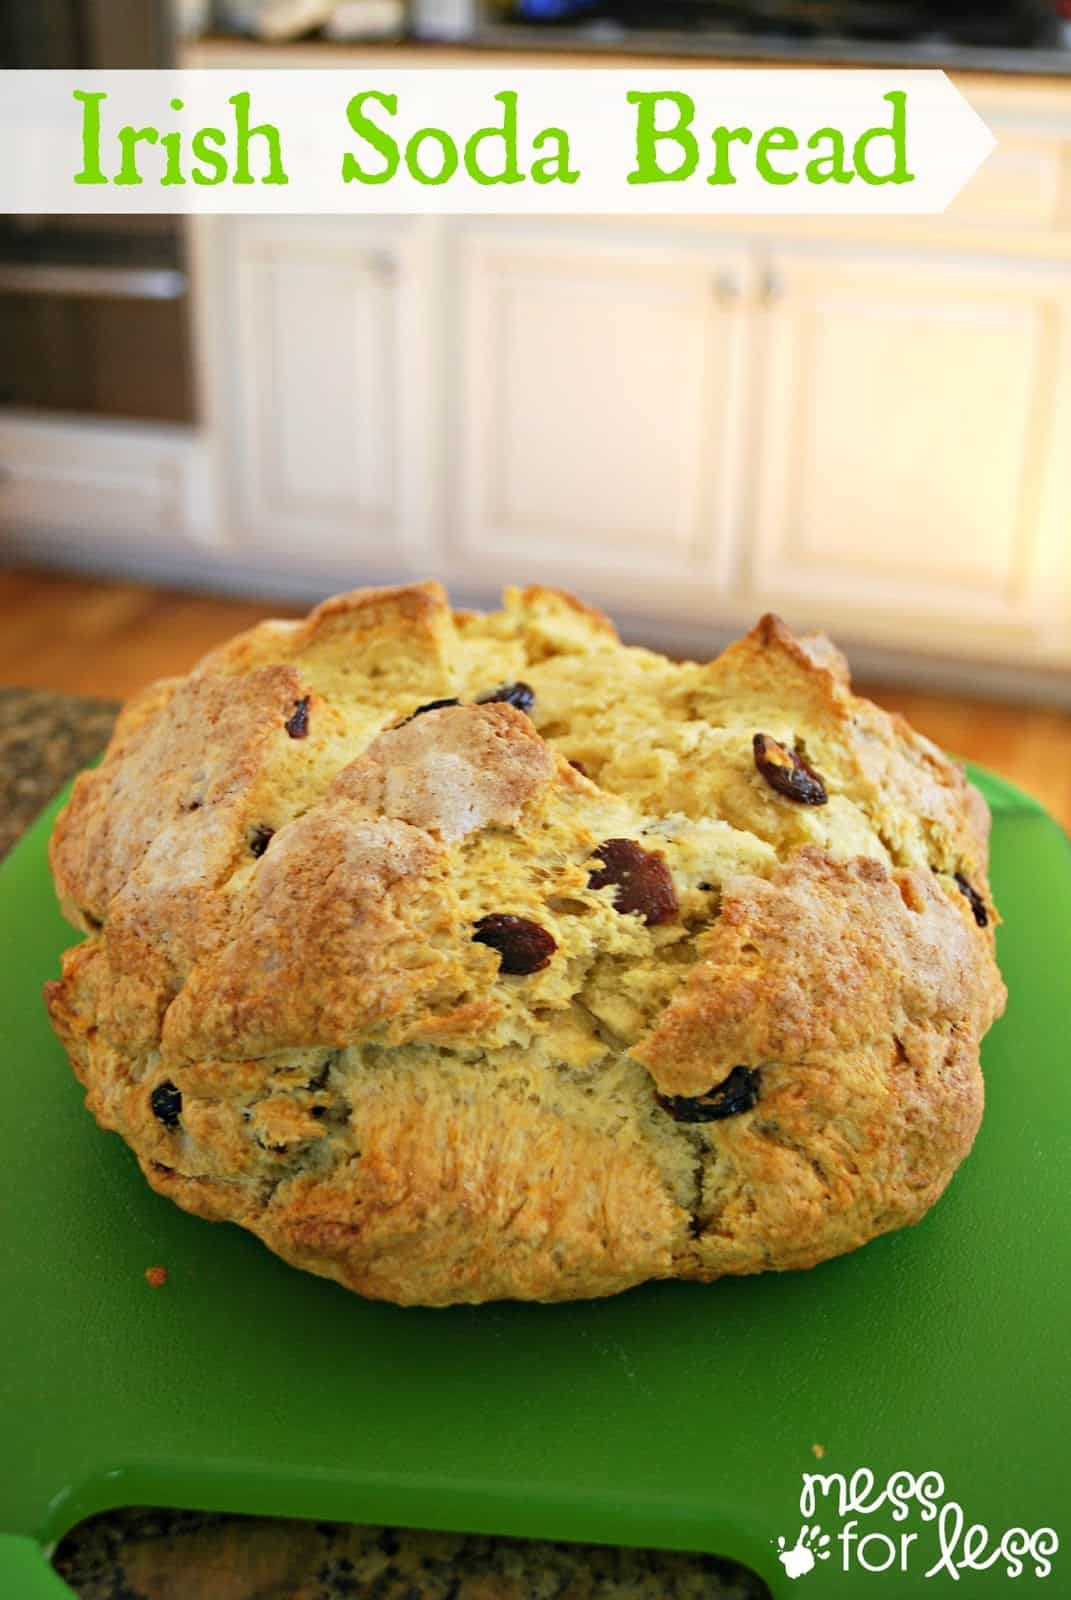 Cranberry Banana Bread - Food Fun Friday - Mess for Less